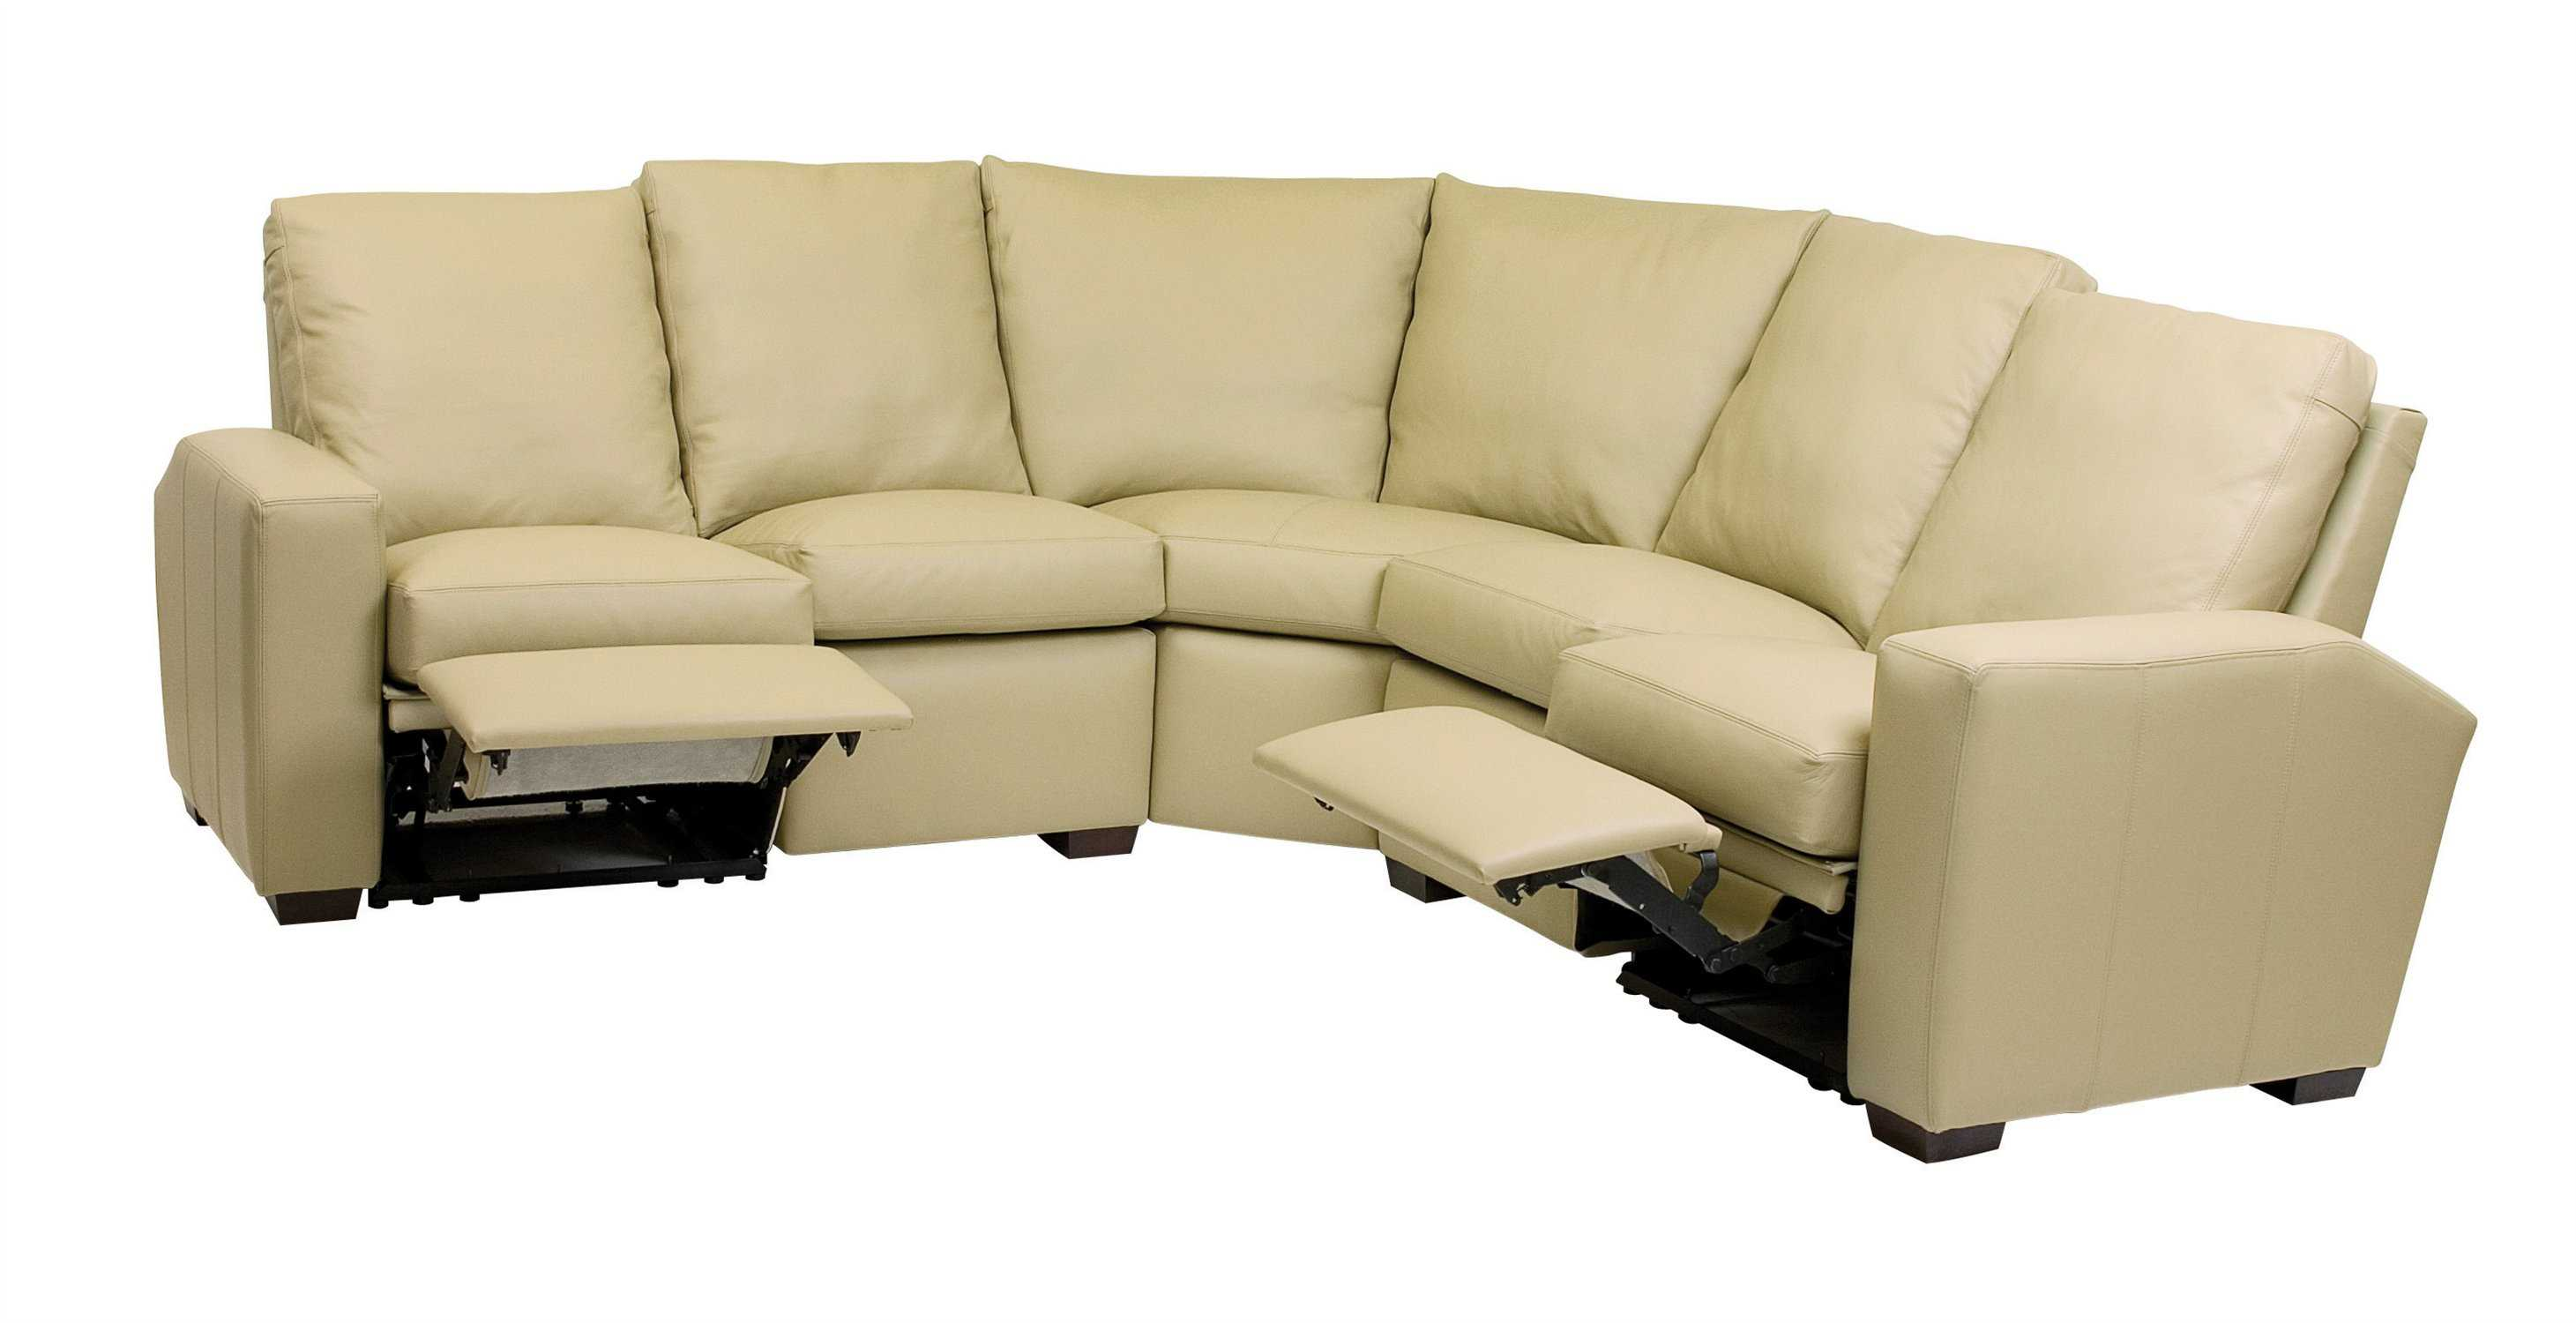 Classic leather metro reclining sectional sofa cl34421 for Classic loveseat